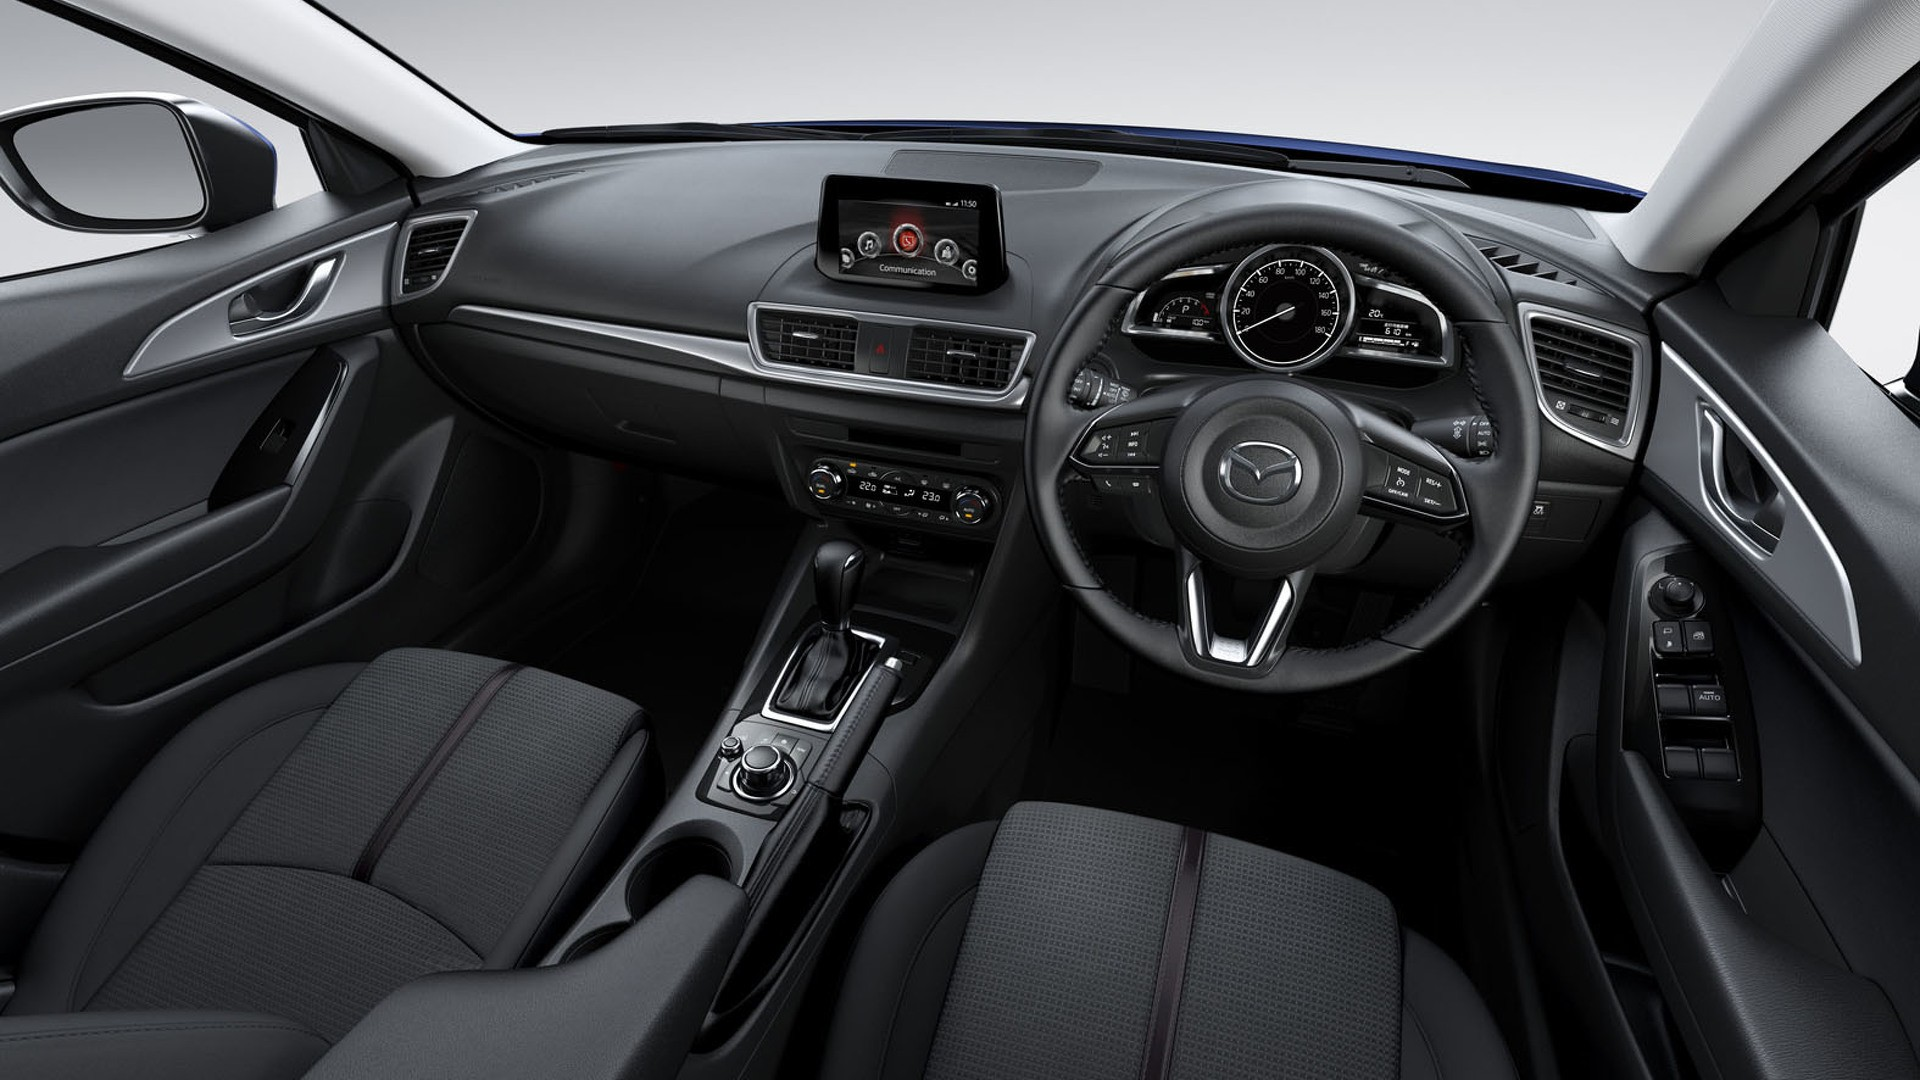 Mazda Skyactiv 2 With Hcci Engine Family To Be Detailed In The